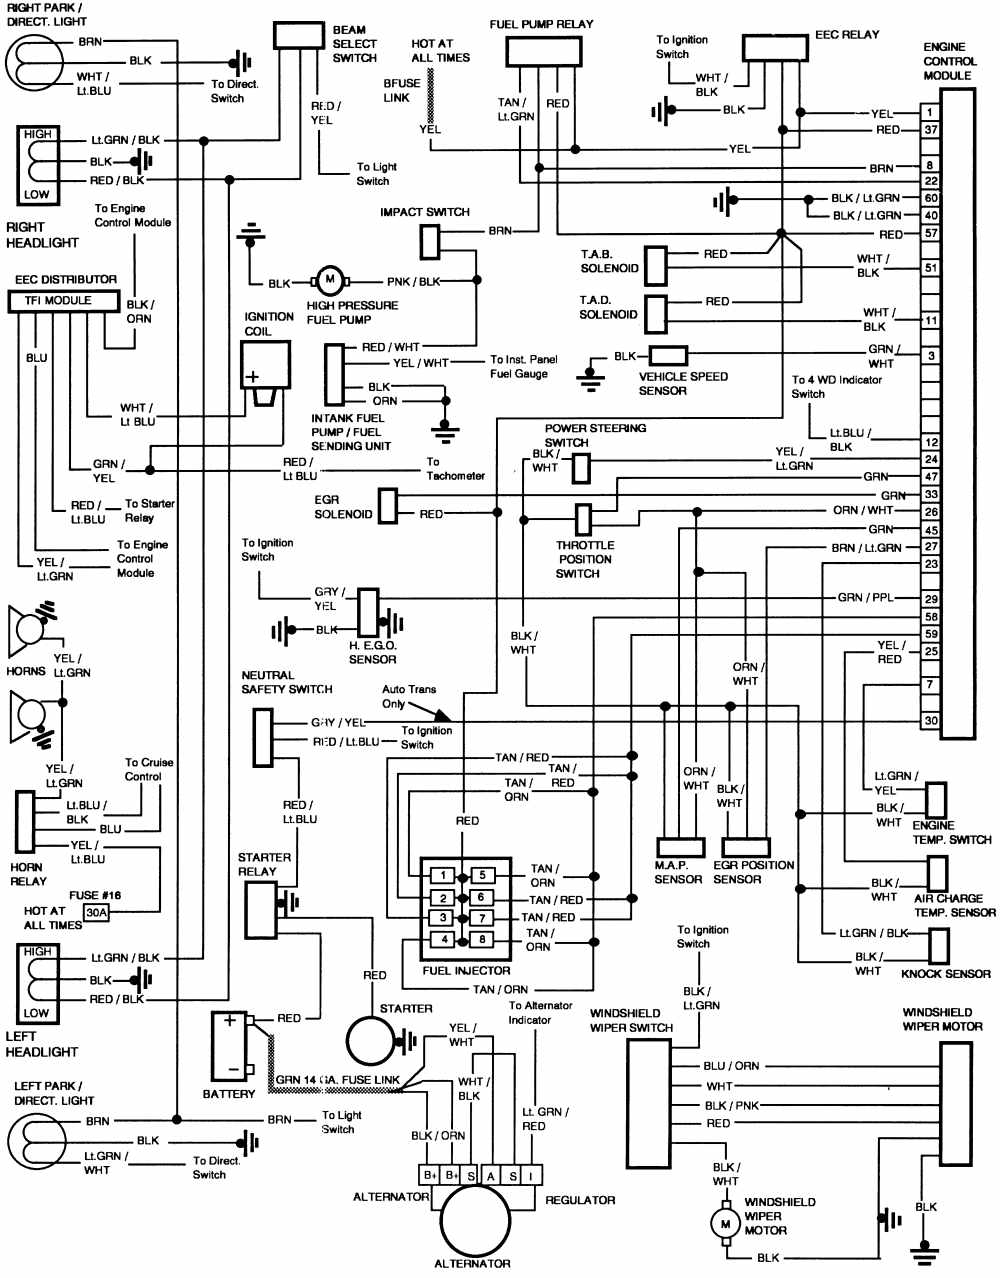 ford f-250 1986 engine control module wiring diagram | all ... 06 ford f 250 wiring diagram ford f 250 wiring diagram starter